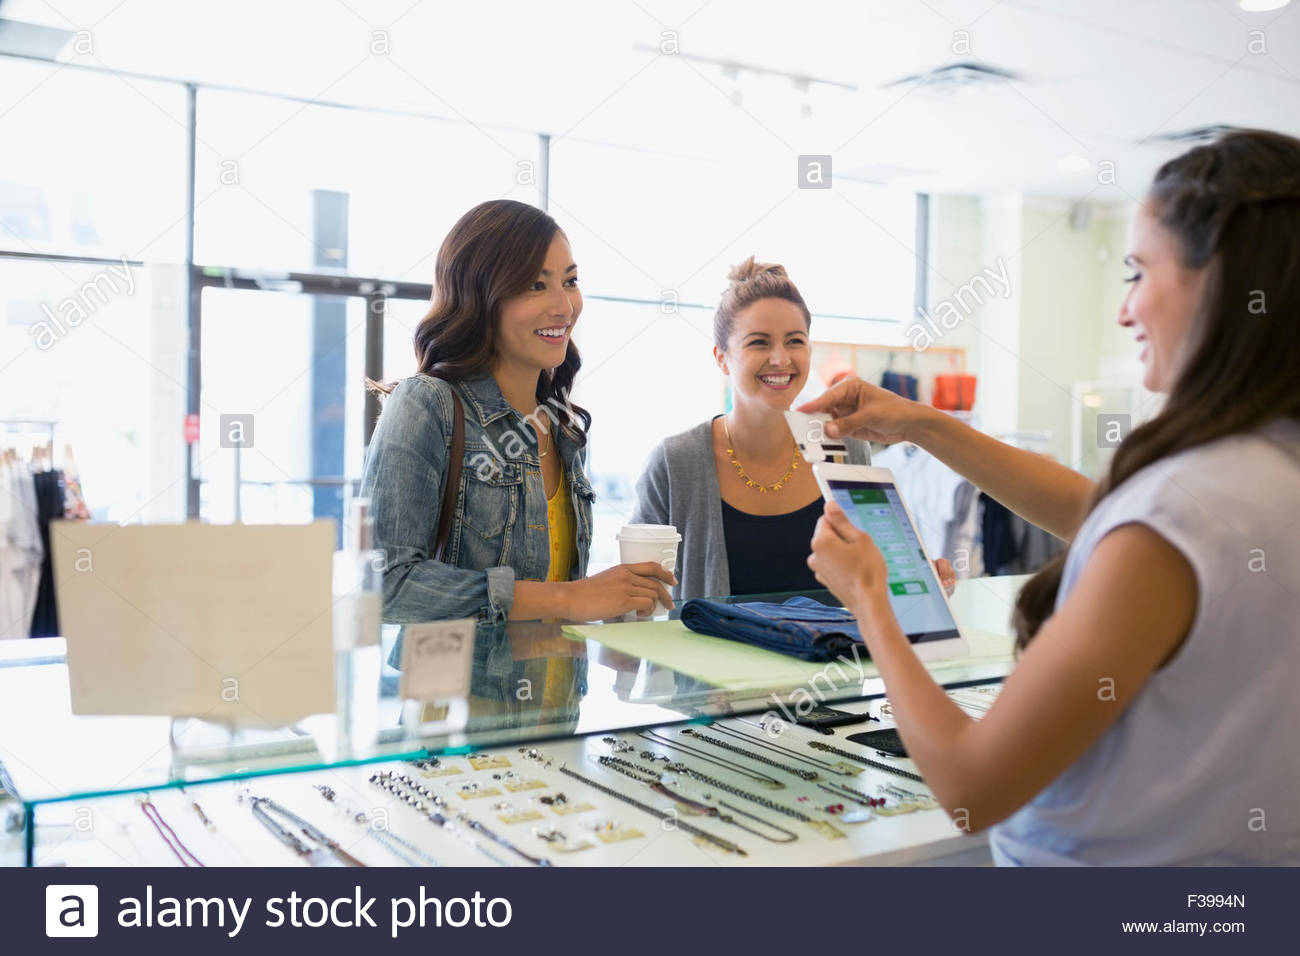 Worker swiping credit card reader digital tablet shop Stock Photo